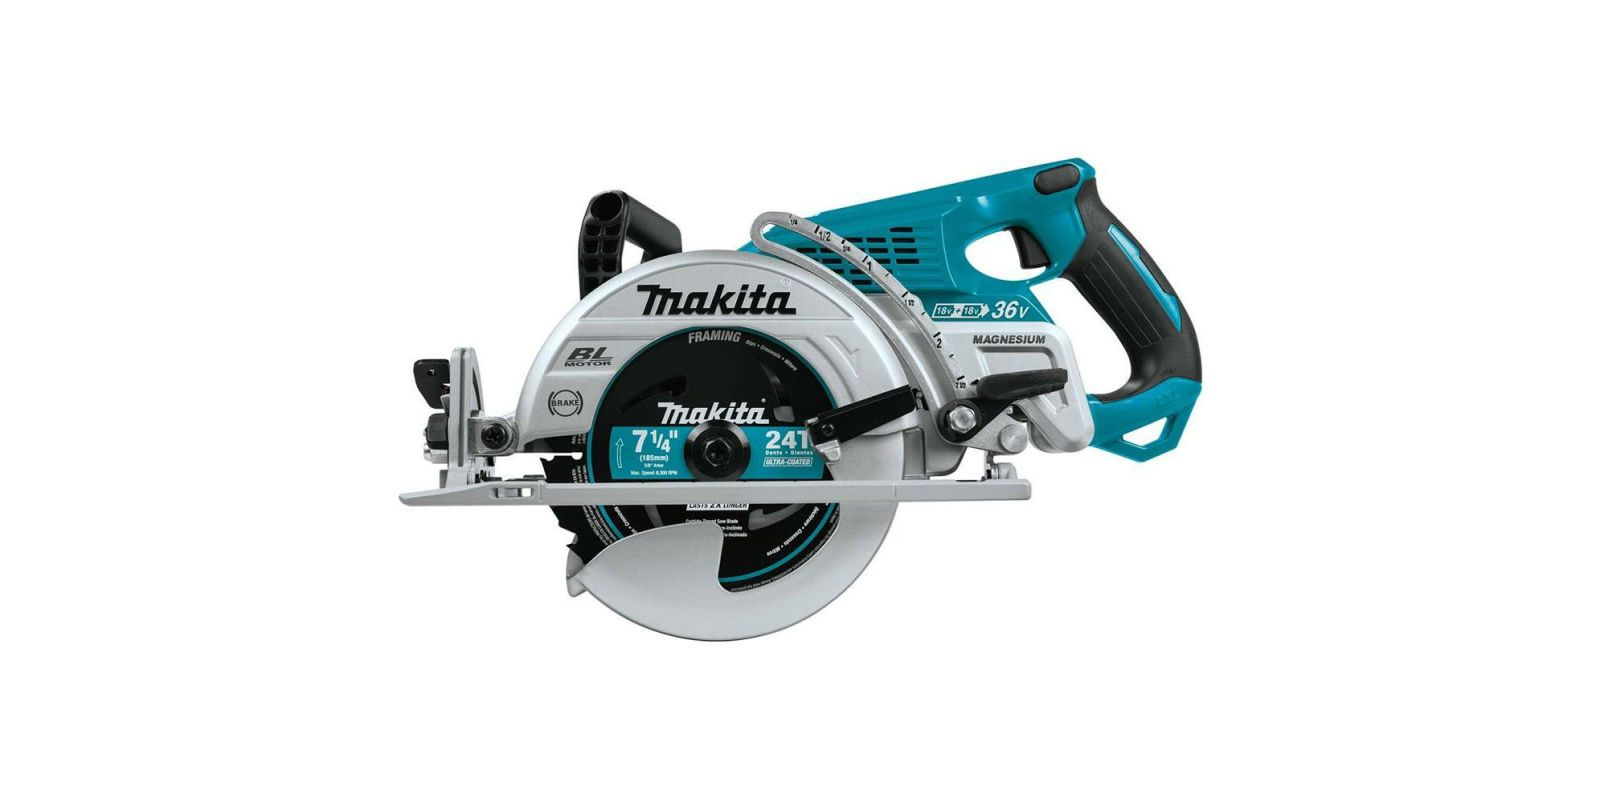 Here it Is, the First Cordless Rear-Handle Circular Saw